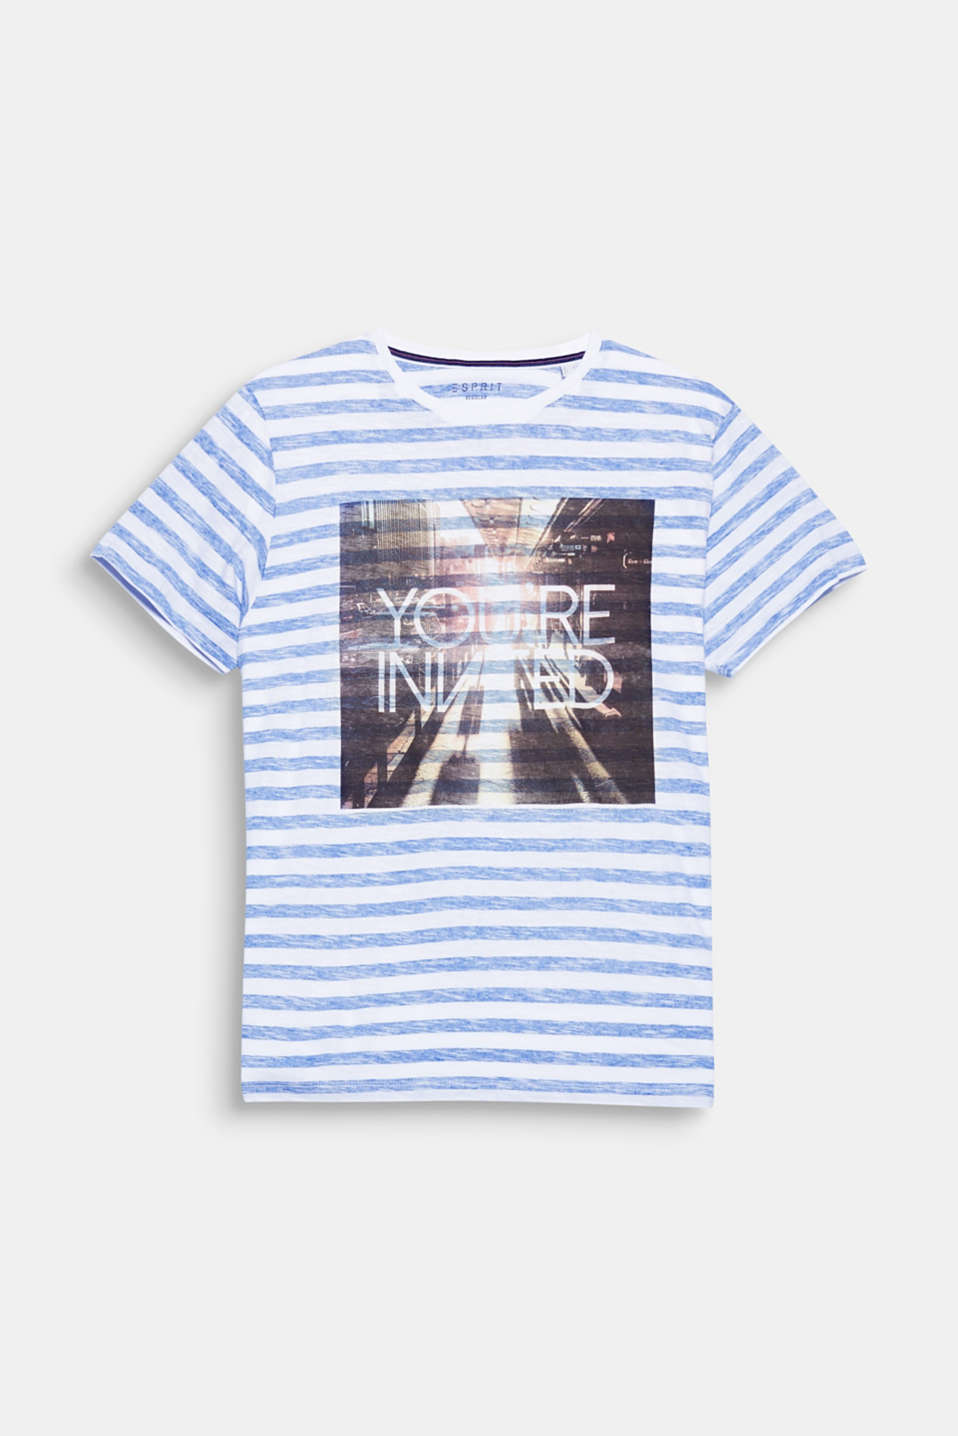 You are invited! The atmospheric photo print gives this T-shirt with an inside-out print a distinctive look.